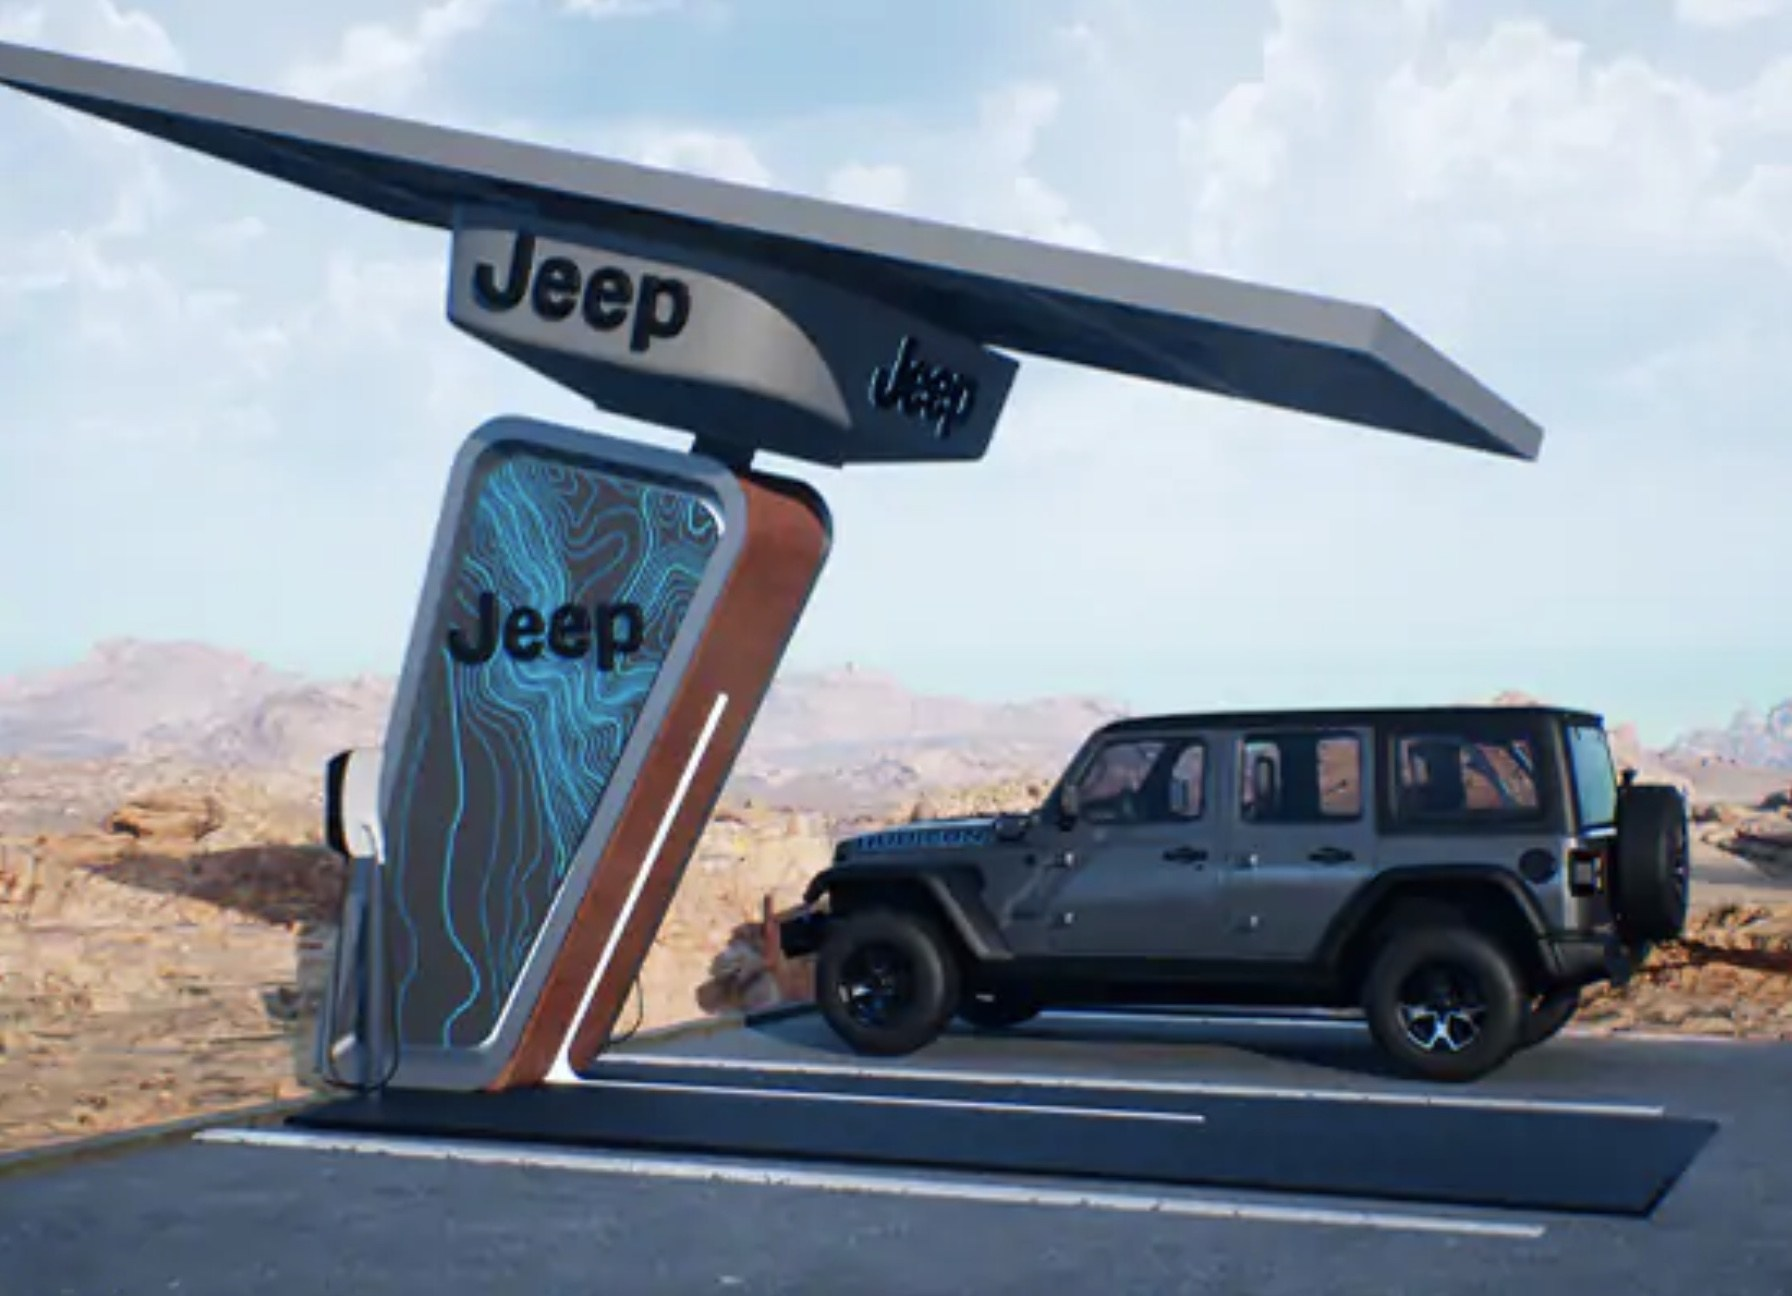 Jeep Wrangler Likely Going To Be A BEV For Everybody To Enjoy